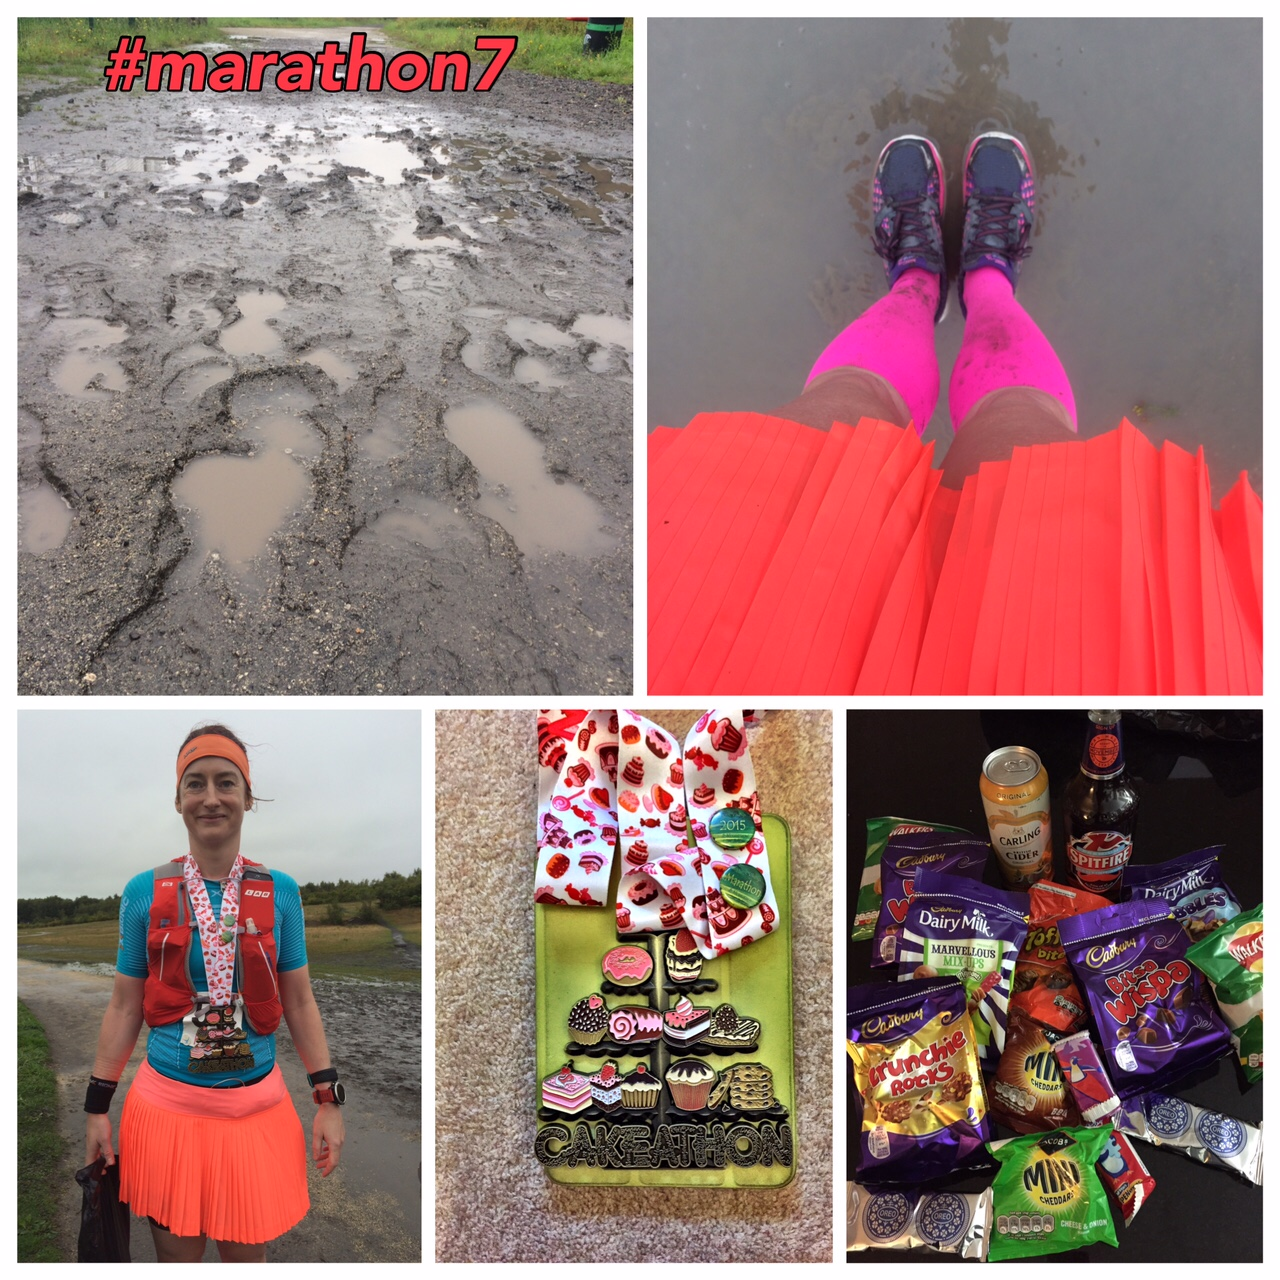 Race Review: Cakeathon #marathon7